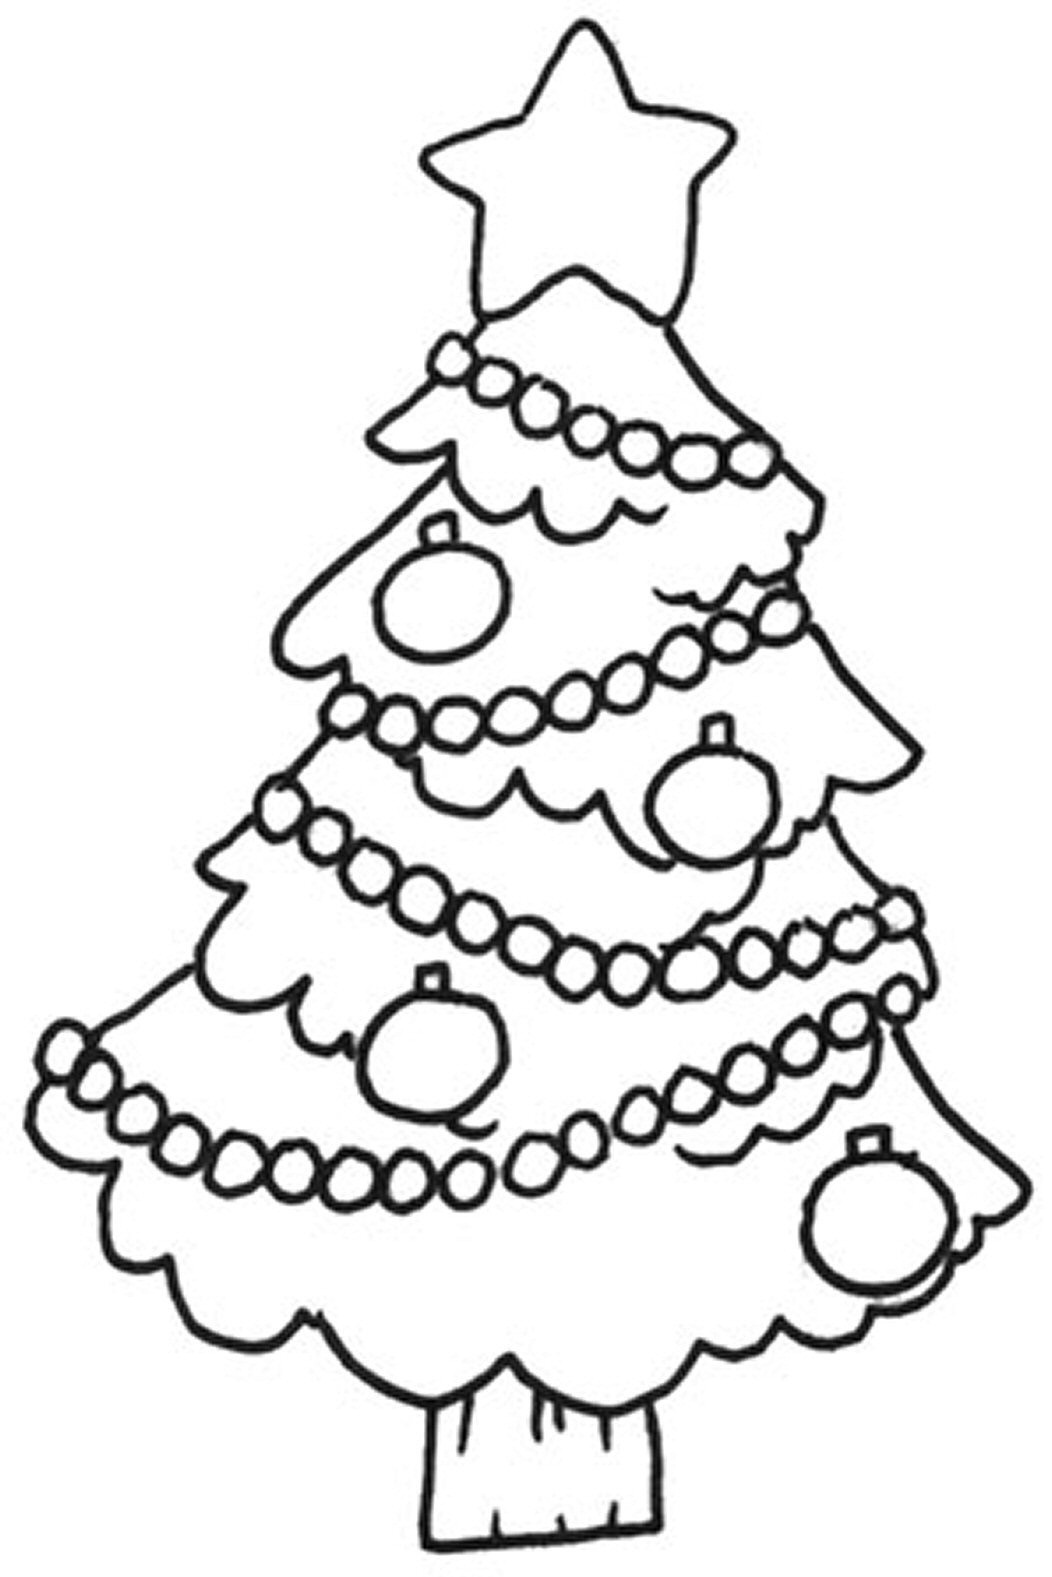 Kids coloring pages christmas trees printable - Christmas Tree Printable Coloring Pages